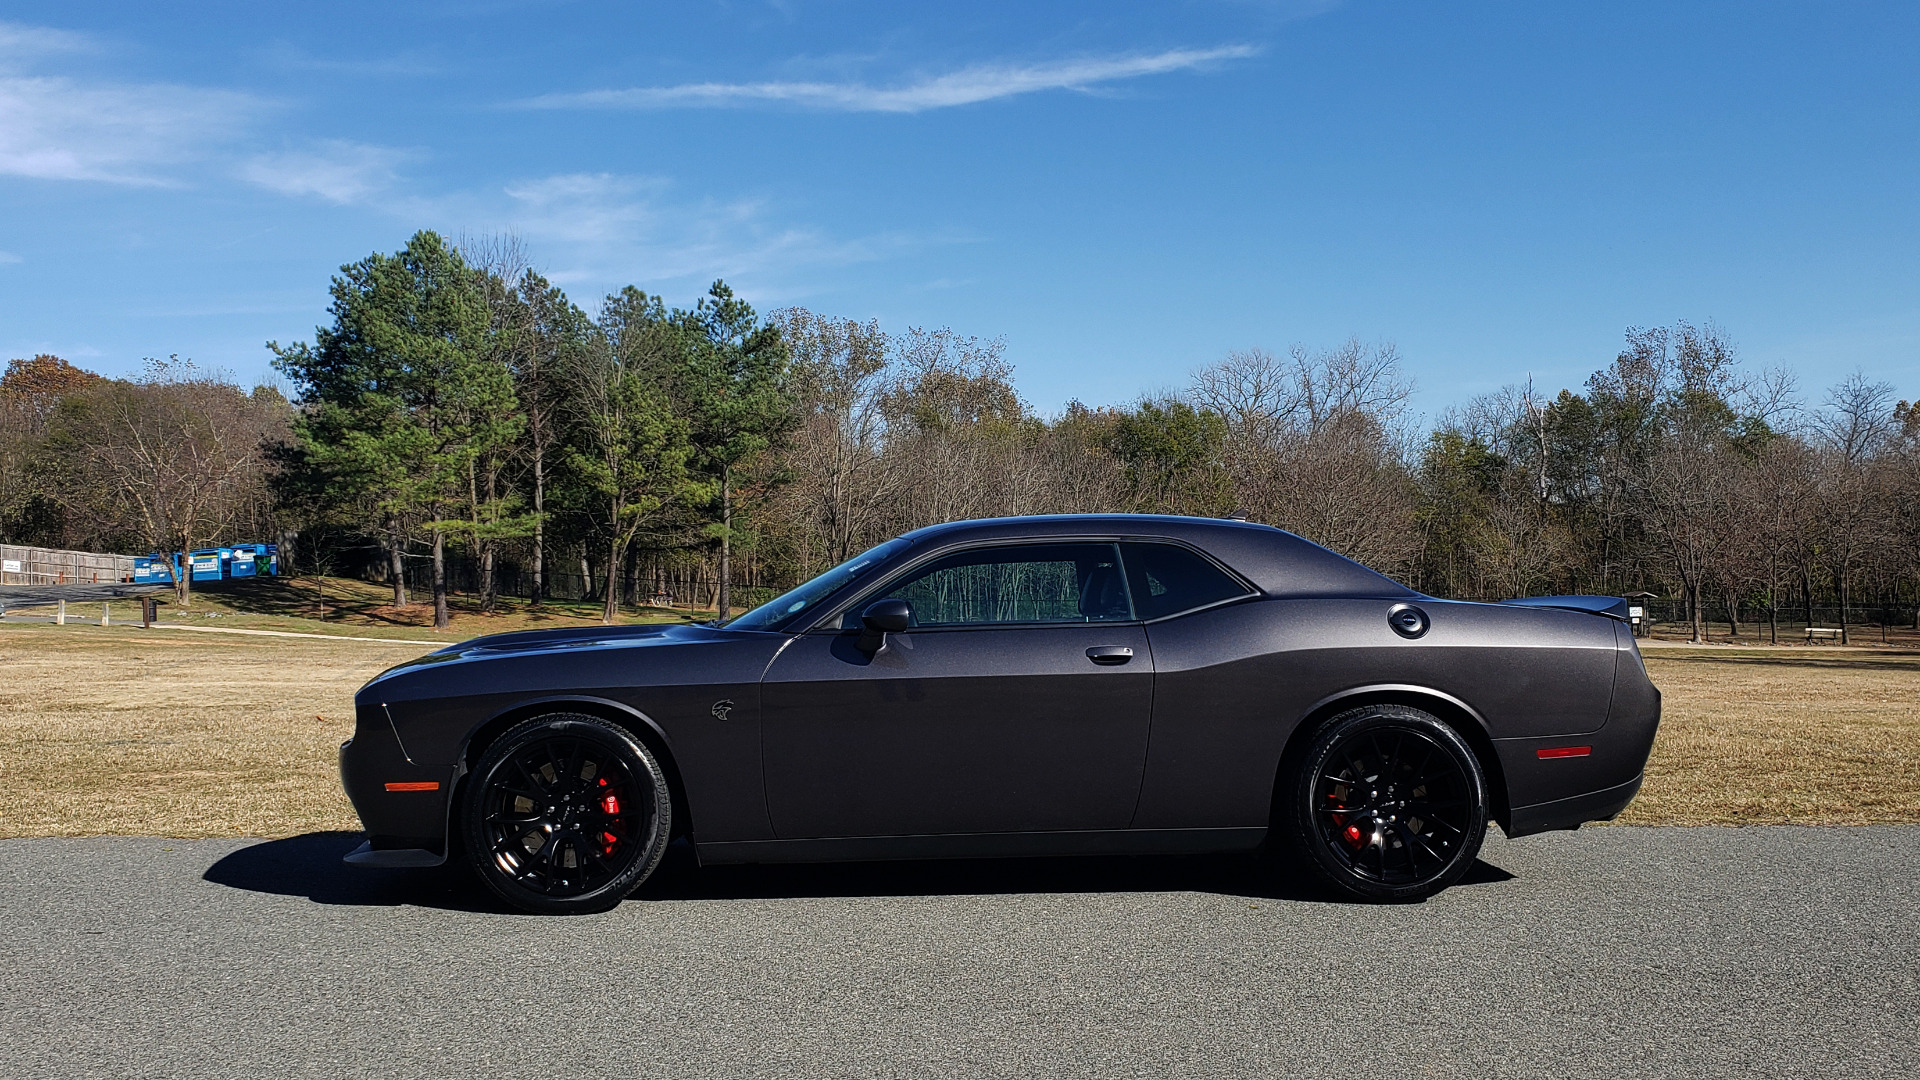 Used 2016 Dodge CHALLENGER SRT HELLCAT COUPE / 6-SPD MAN / NAV / SRT APPS / REARVIEW for sale Sold at Formula Imports in Charlotte NC 28227 3